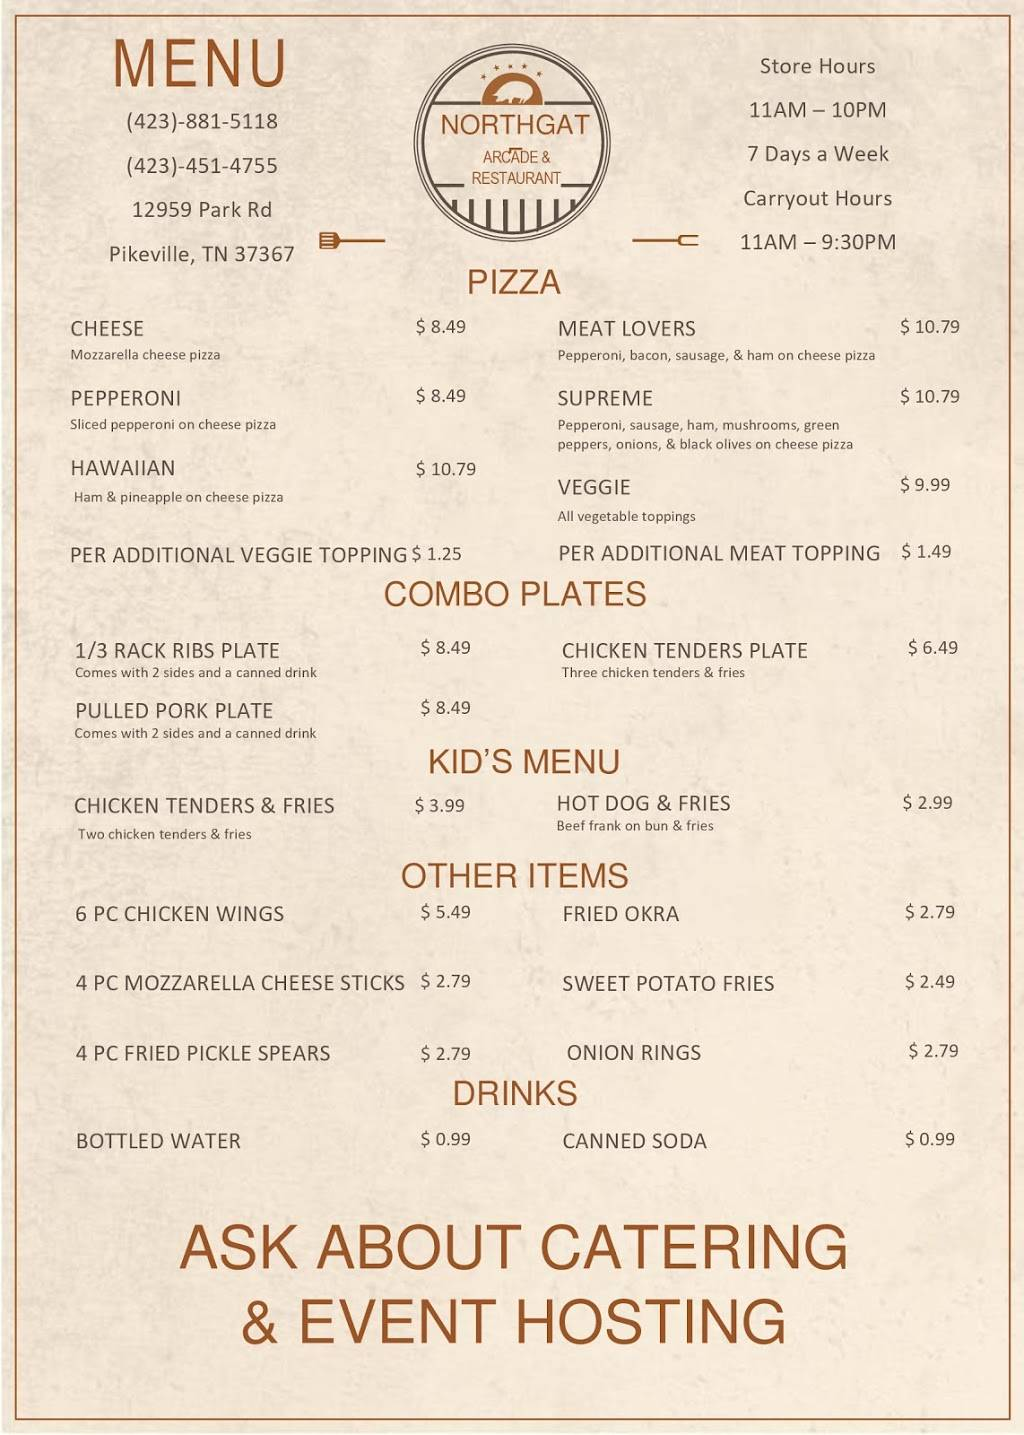 Northgate Arcade and Restaurant | restaurant | 12959 Park Rd, Pikeville, TN 37367, USA | 4238815118 OR +1 423-881-5118